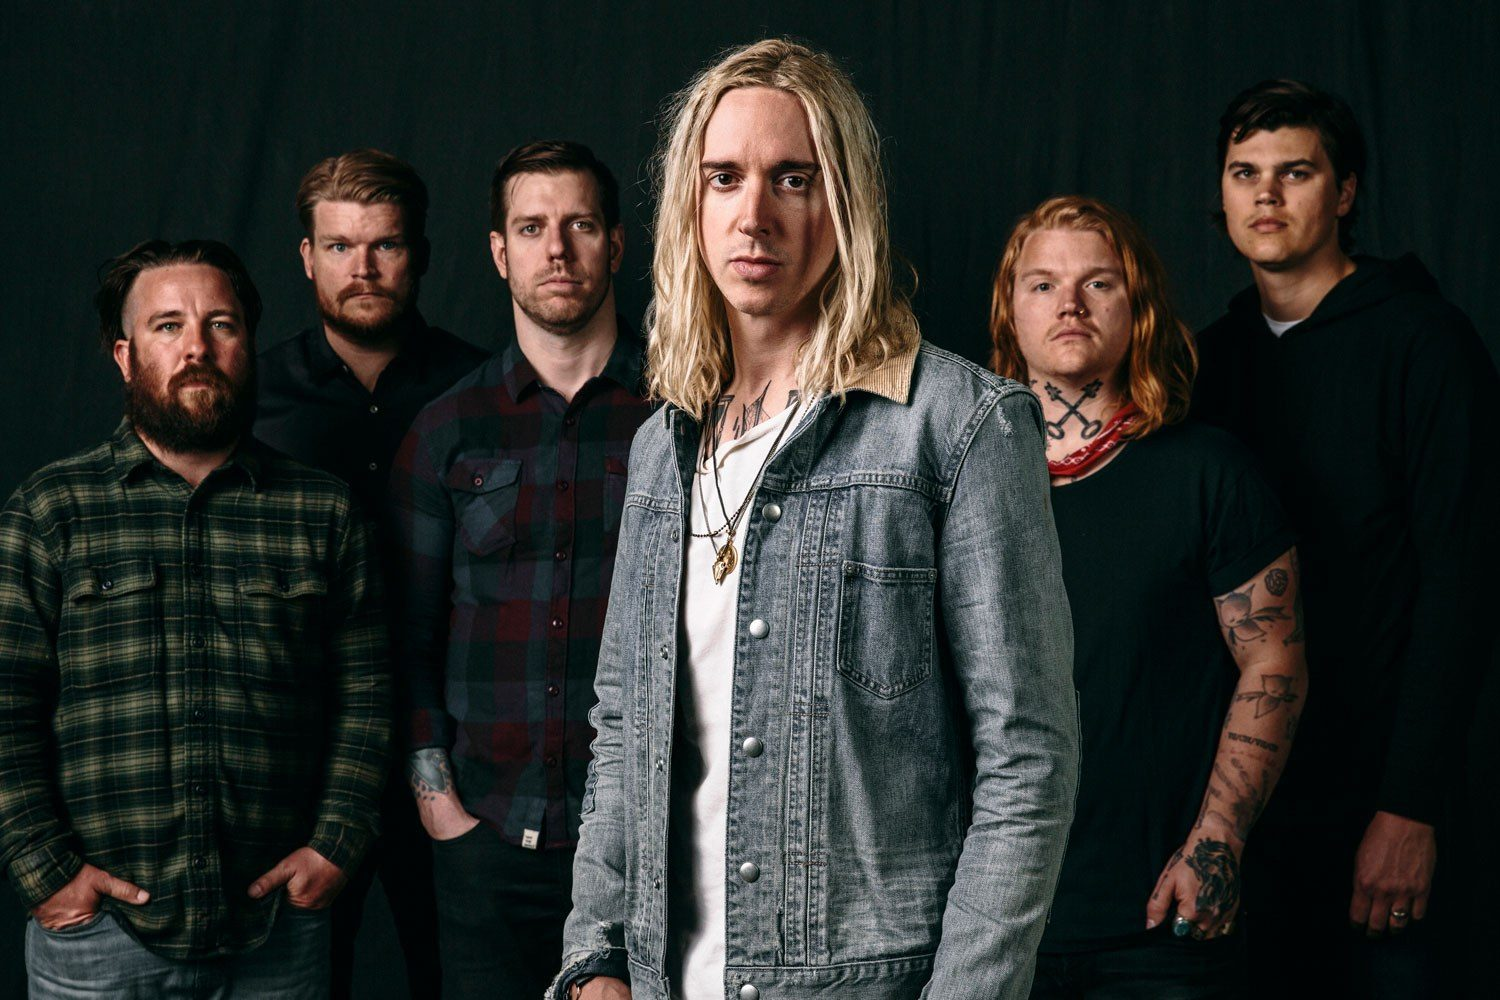 Underoath have released an unsettling new video for 'Wake Me'